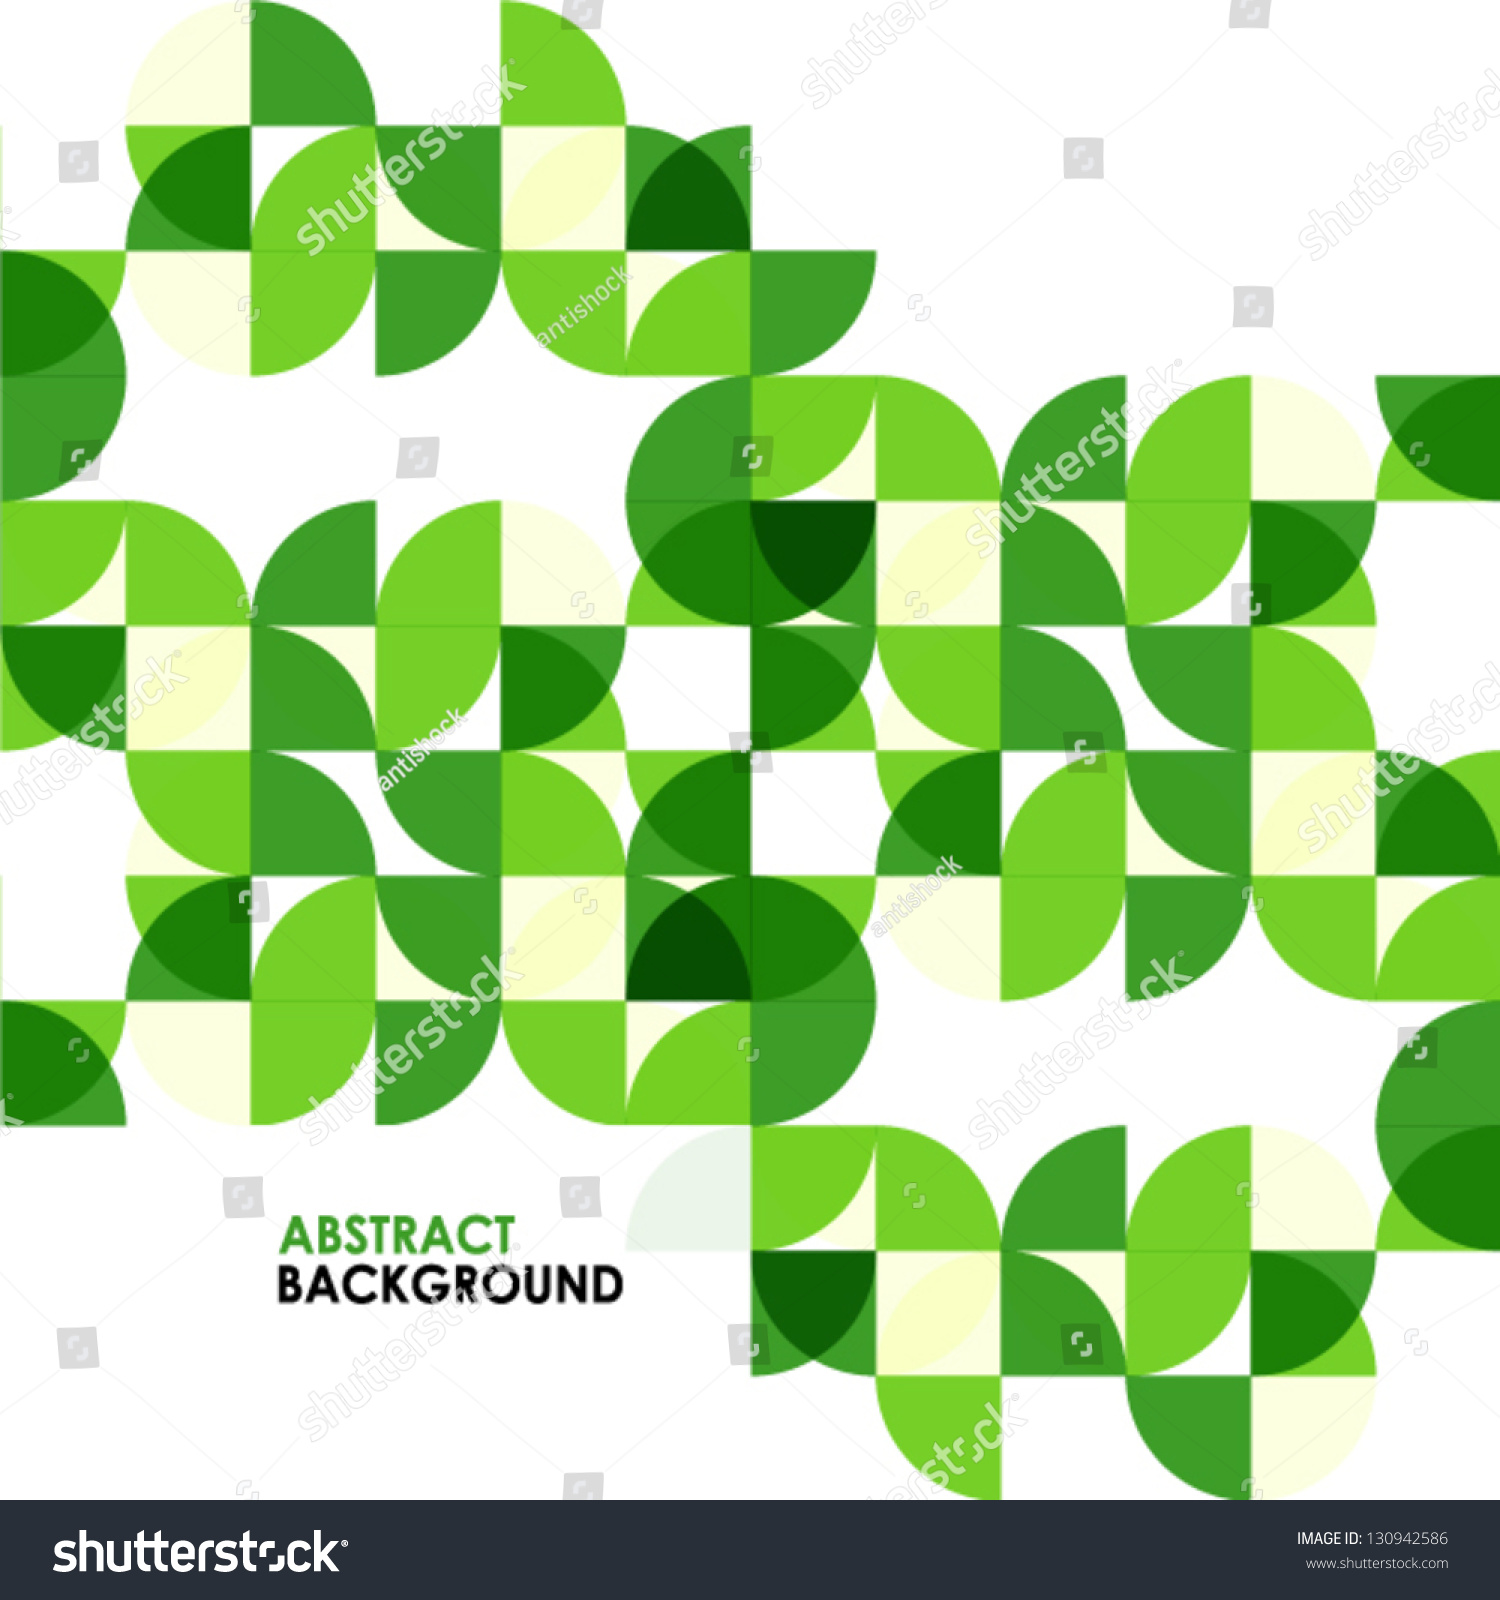 stock vector geometric background - photo #21